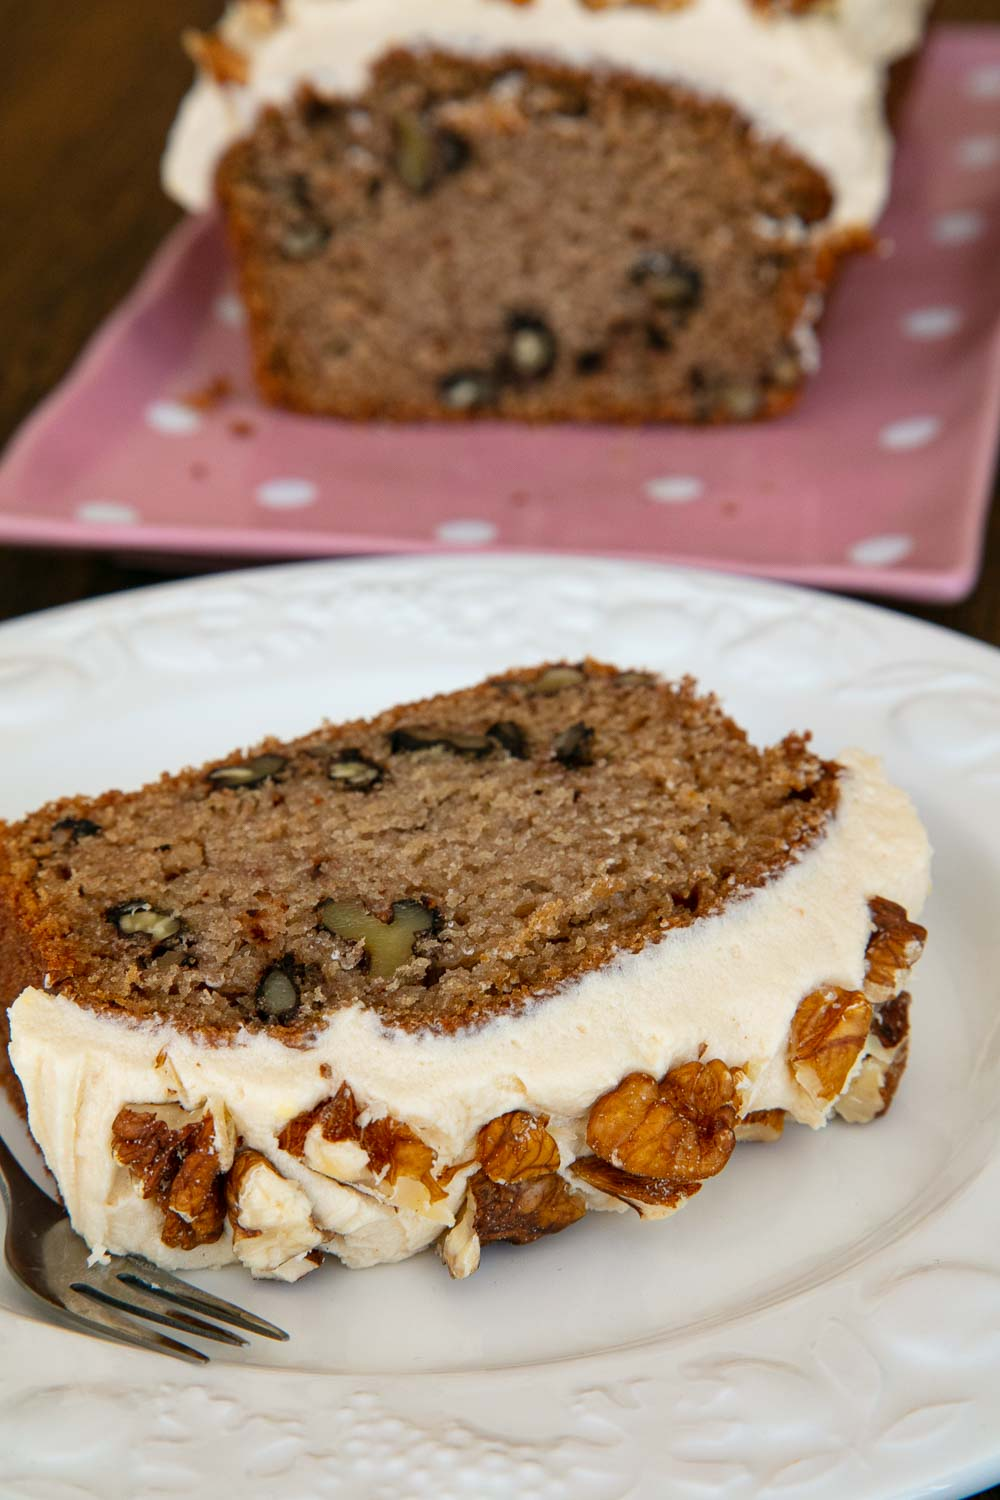 A slice of coffee and walnut cake topped with coffee buttercream and chopped walnuts.